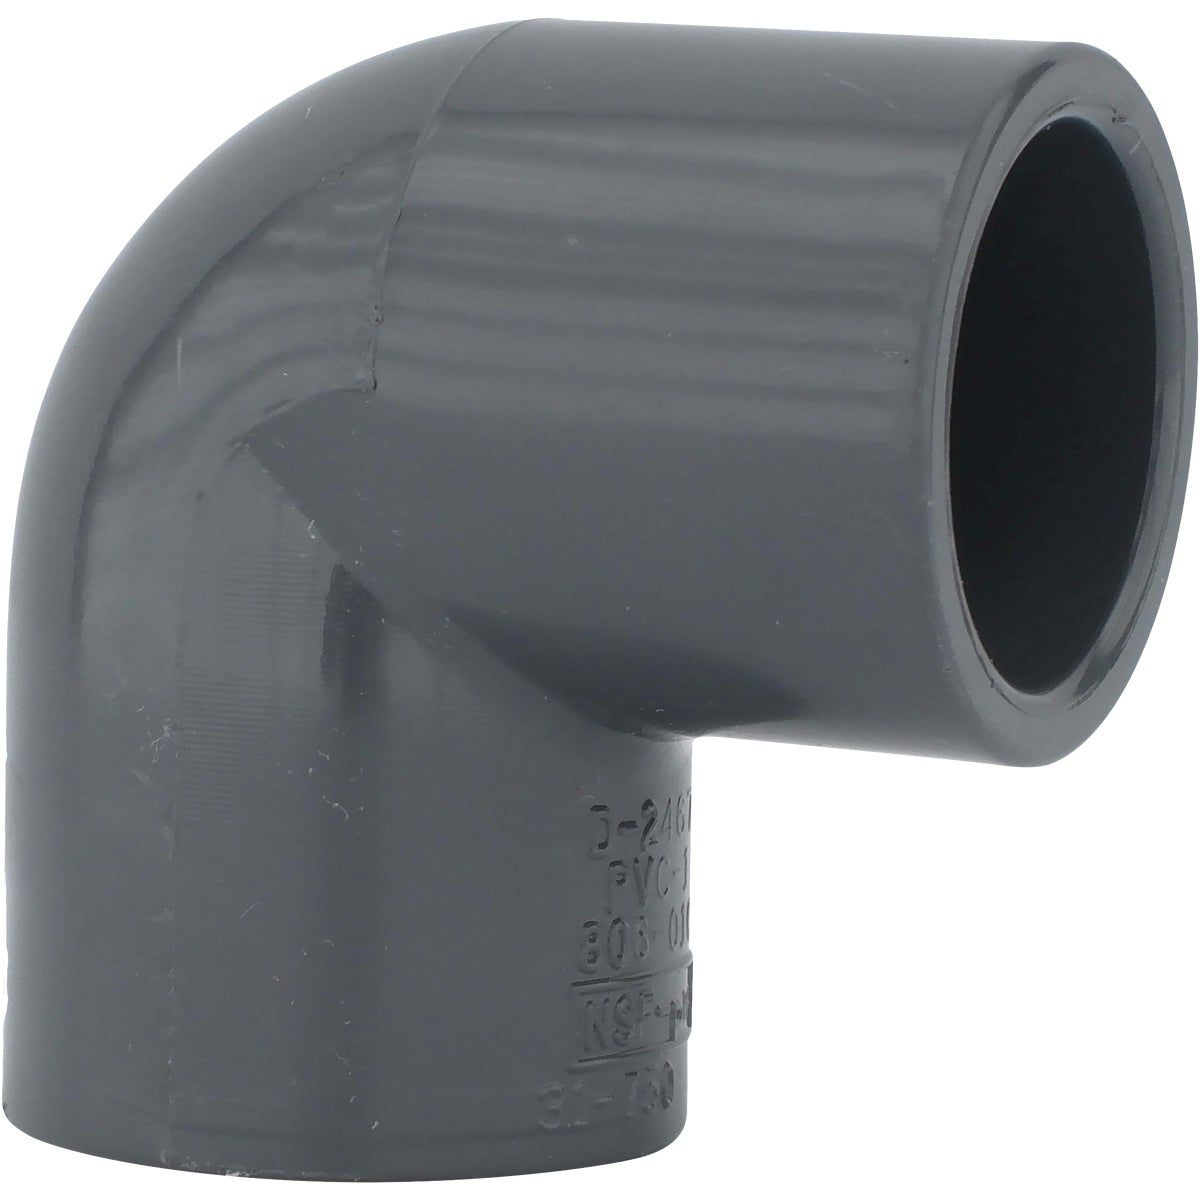 "1-1/2"" 90D S80 PVC ELBOW - 307158 by Genova Inc"